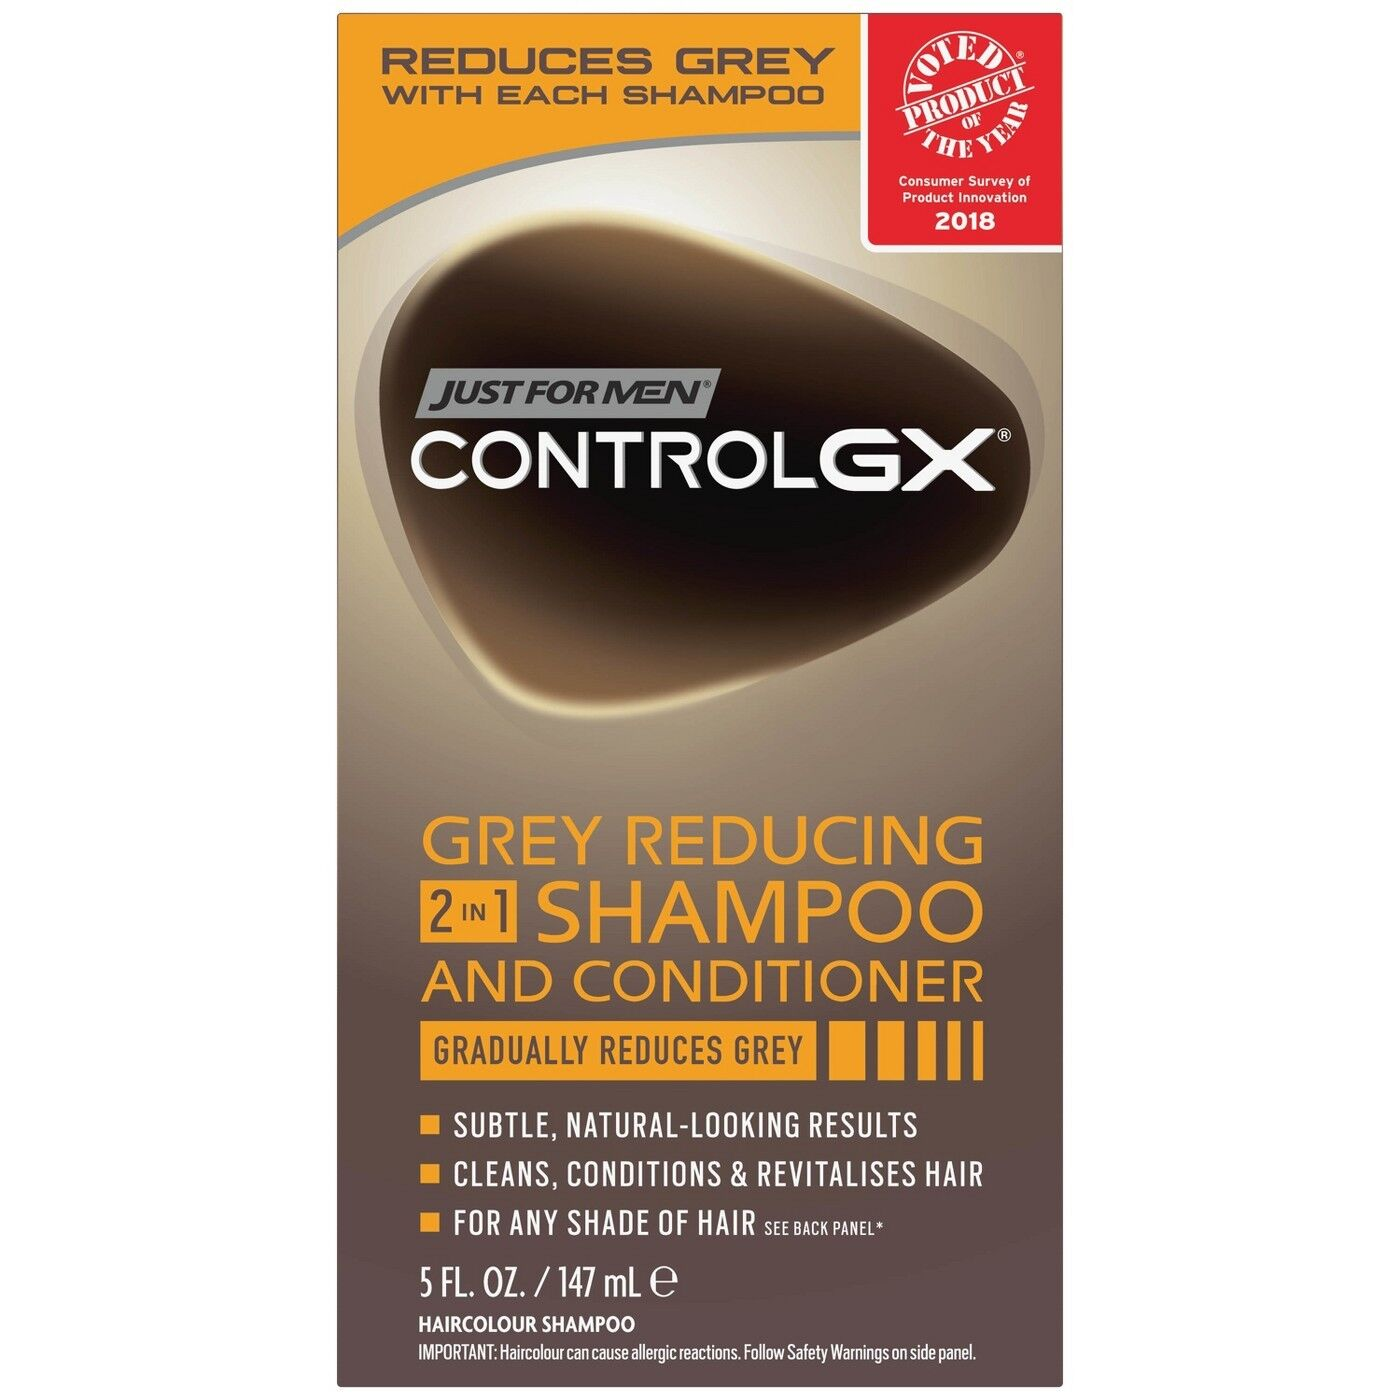 New Just For Men Control GX Grey Reducing 2 in 1 Shampoo and